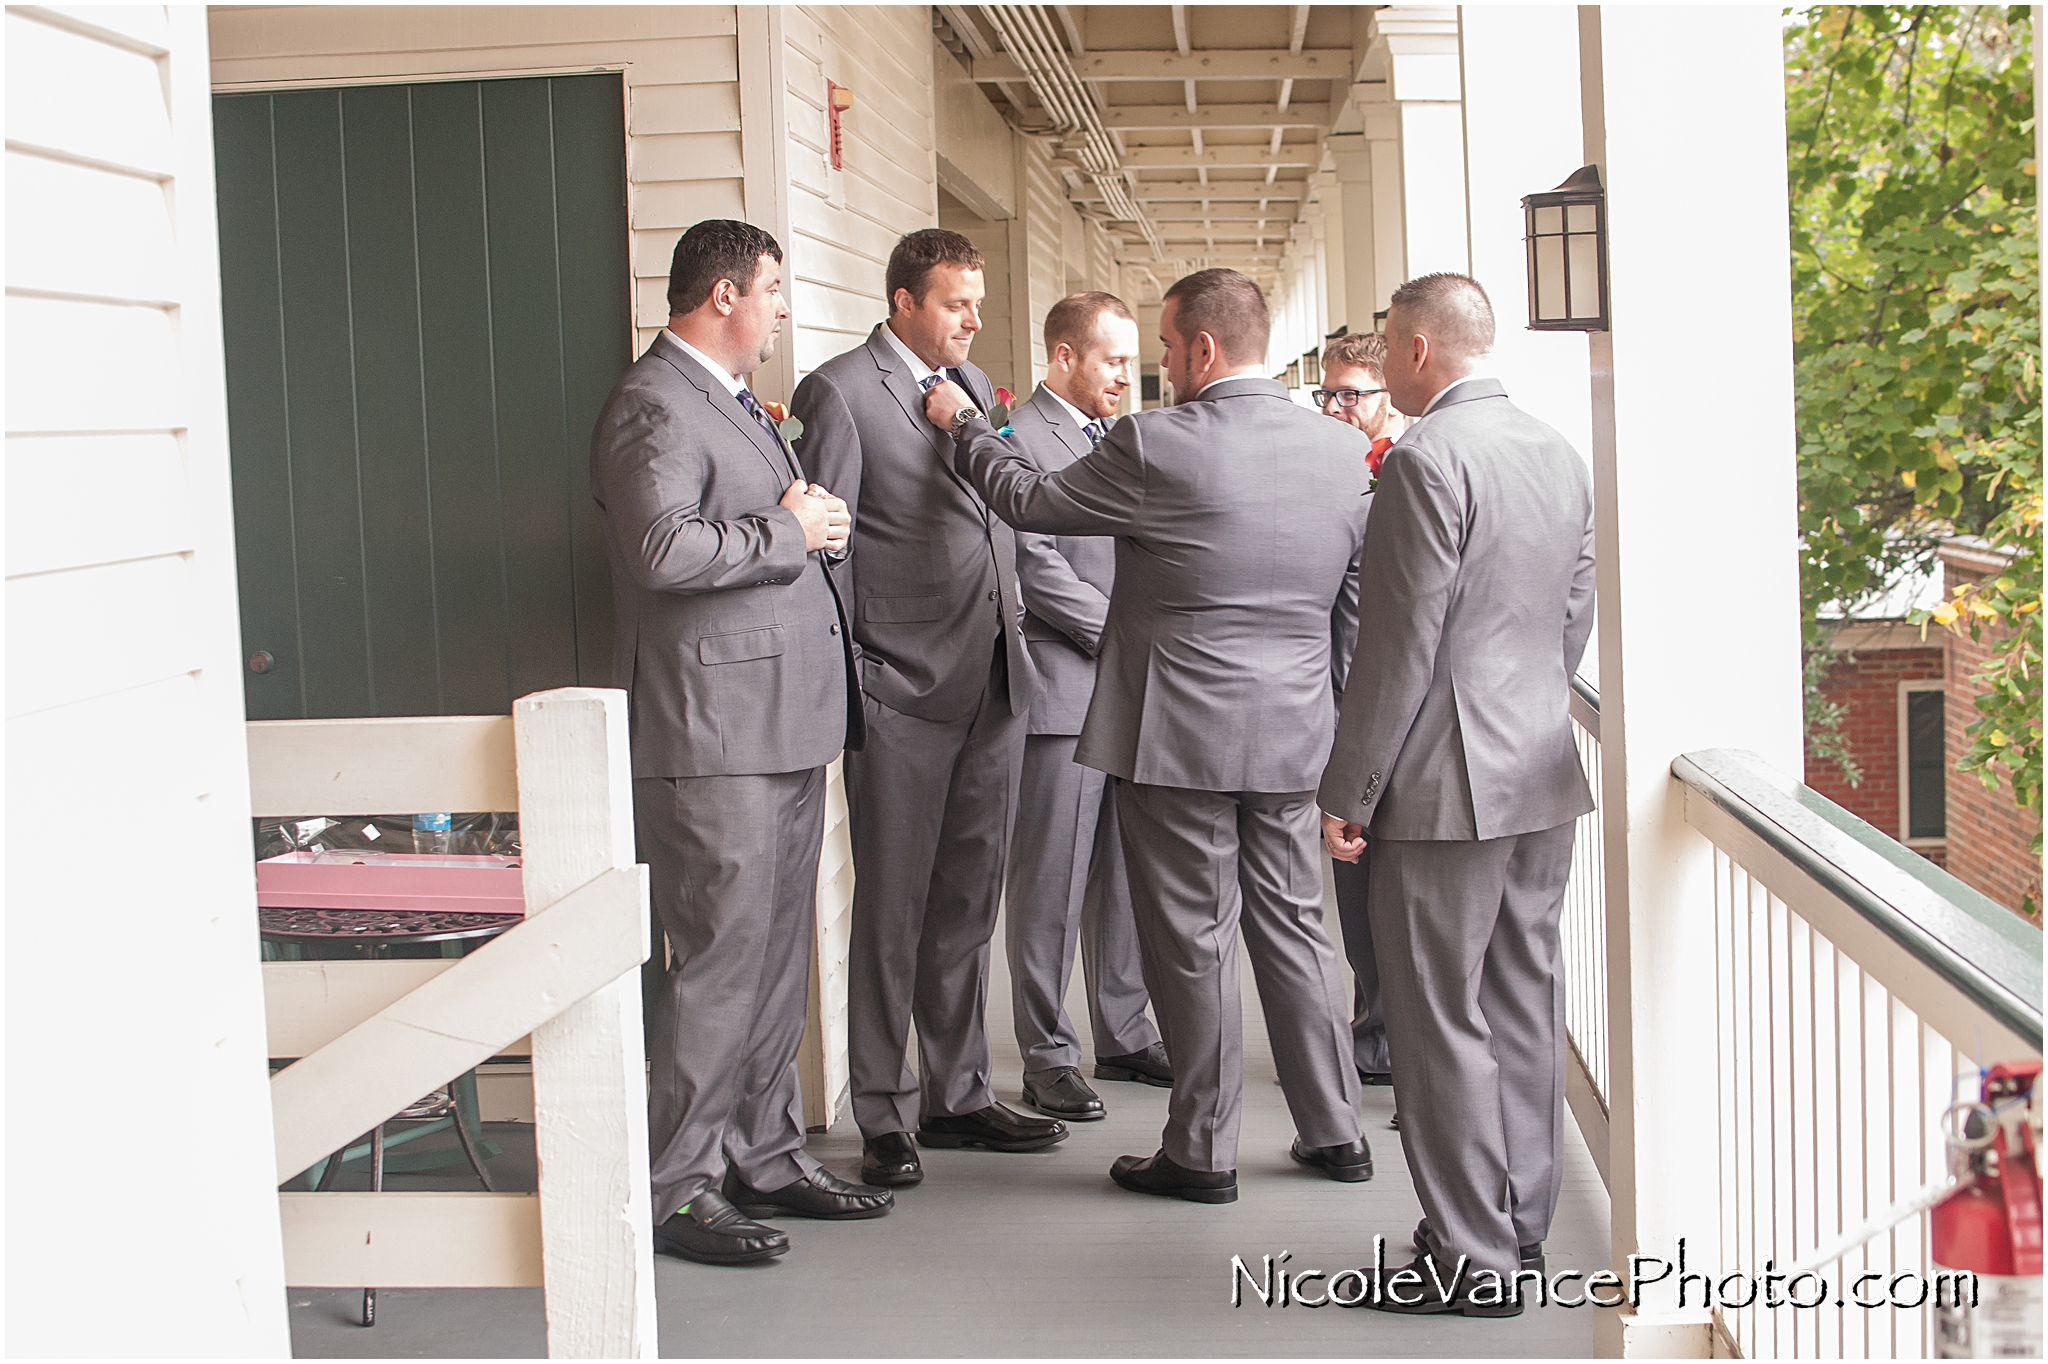 The groom enjoys a few minutes together with his groomsmen at the Linden Row Inn, in Richmond, VA.